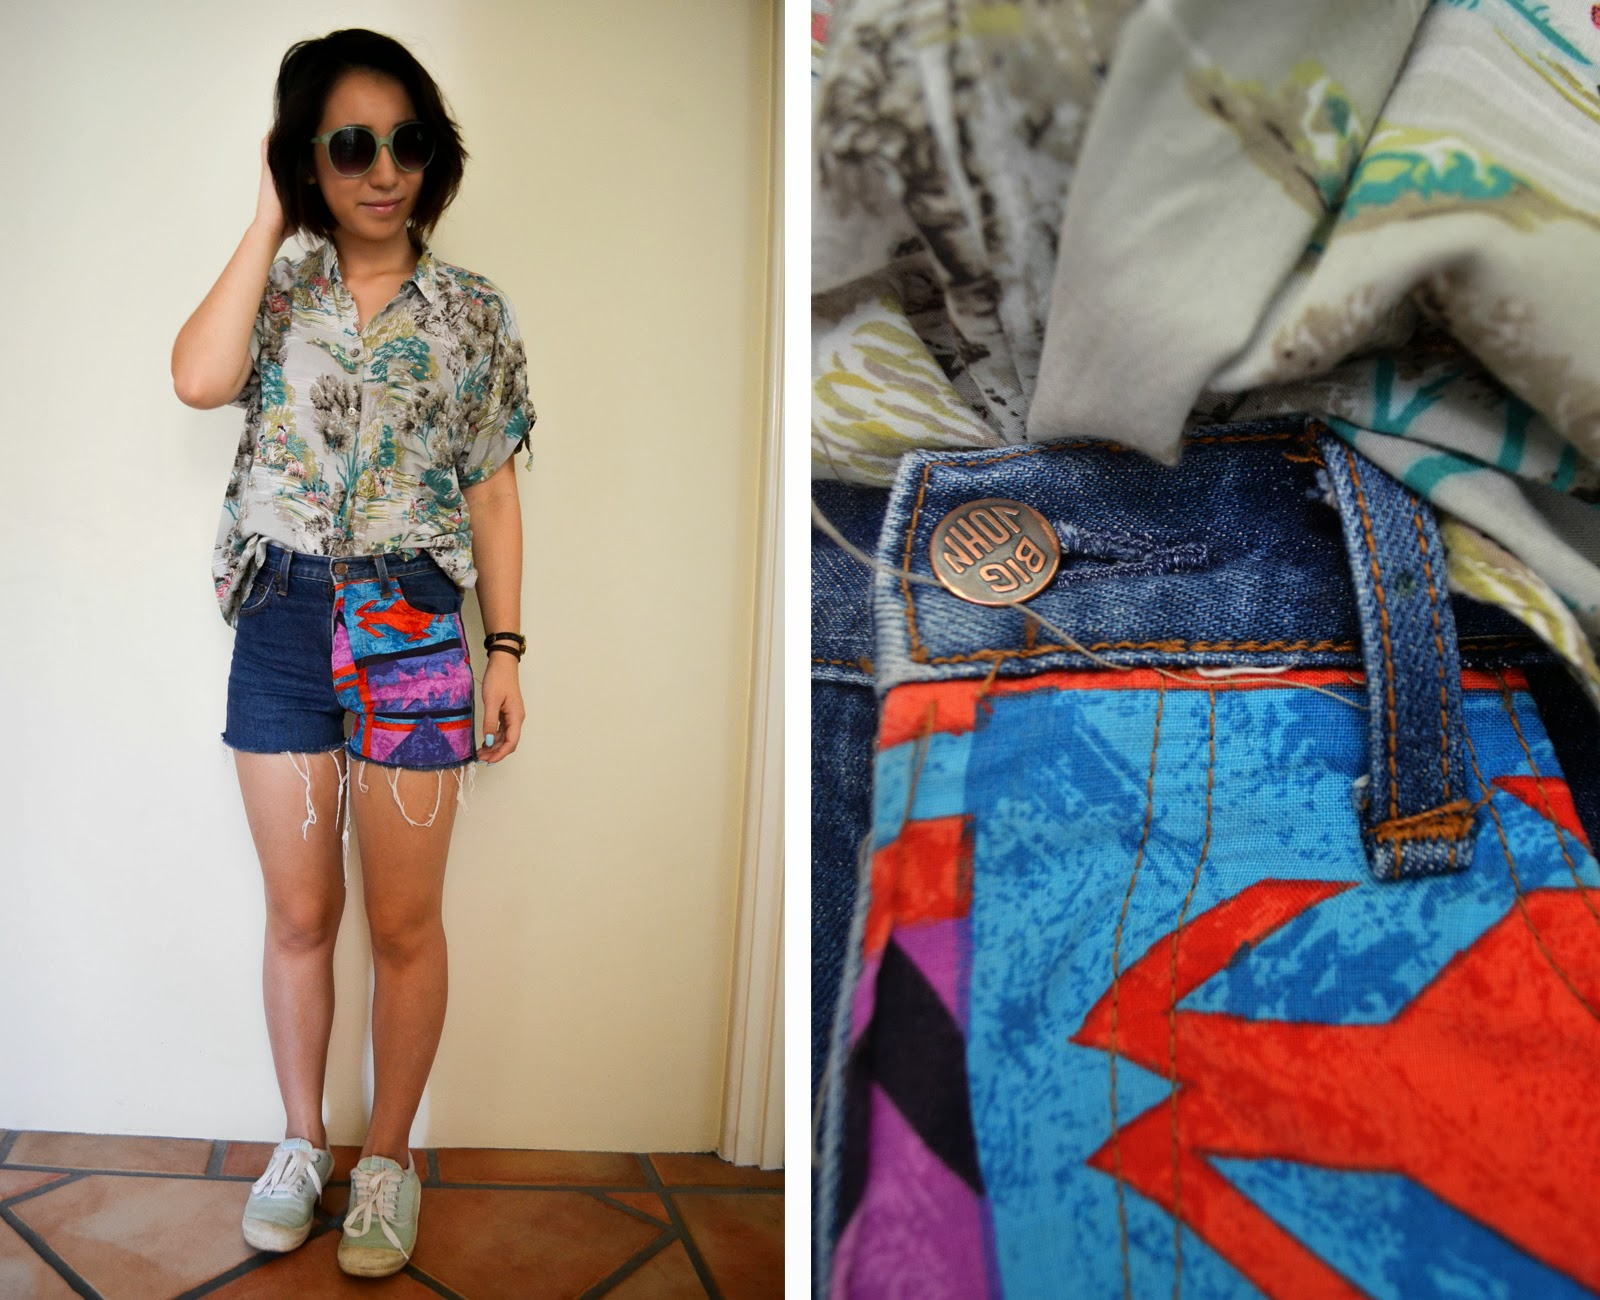 vintage prints clashing patterns shorts shirt denim cutoffs distressed shoes topshop sunglasses look outfit inspiration style